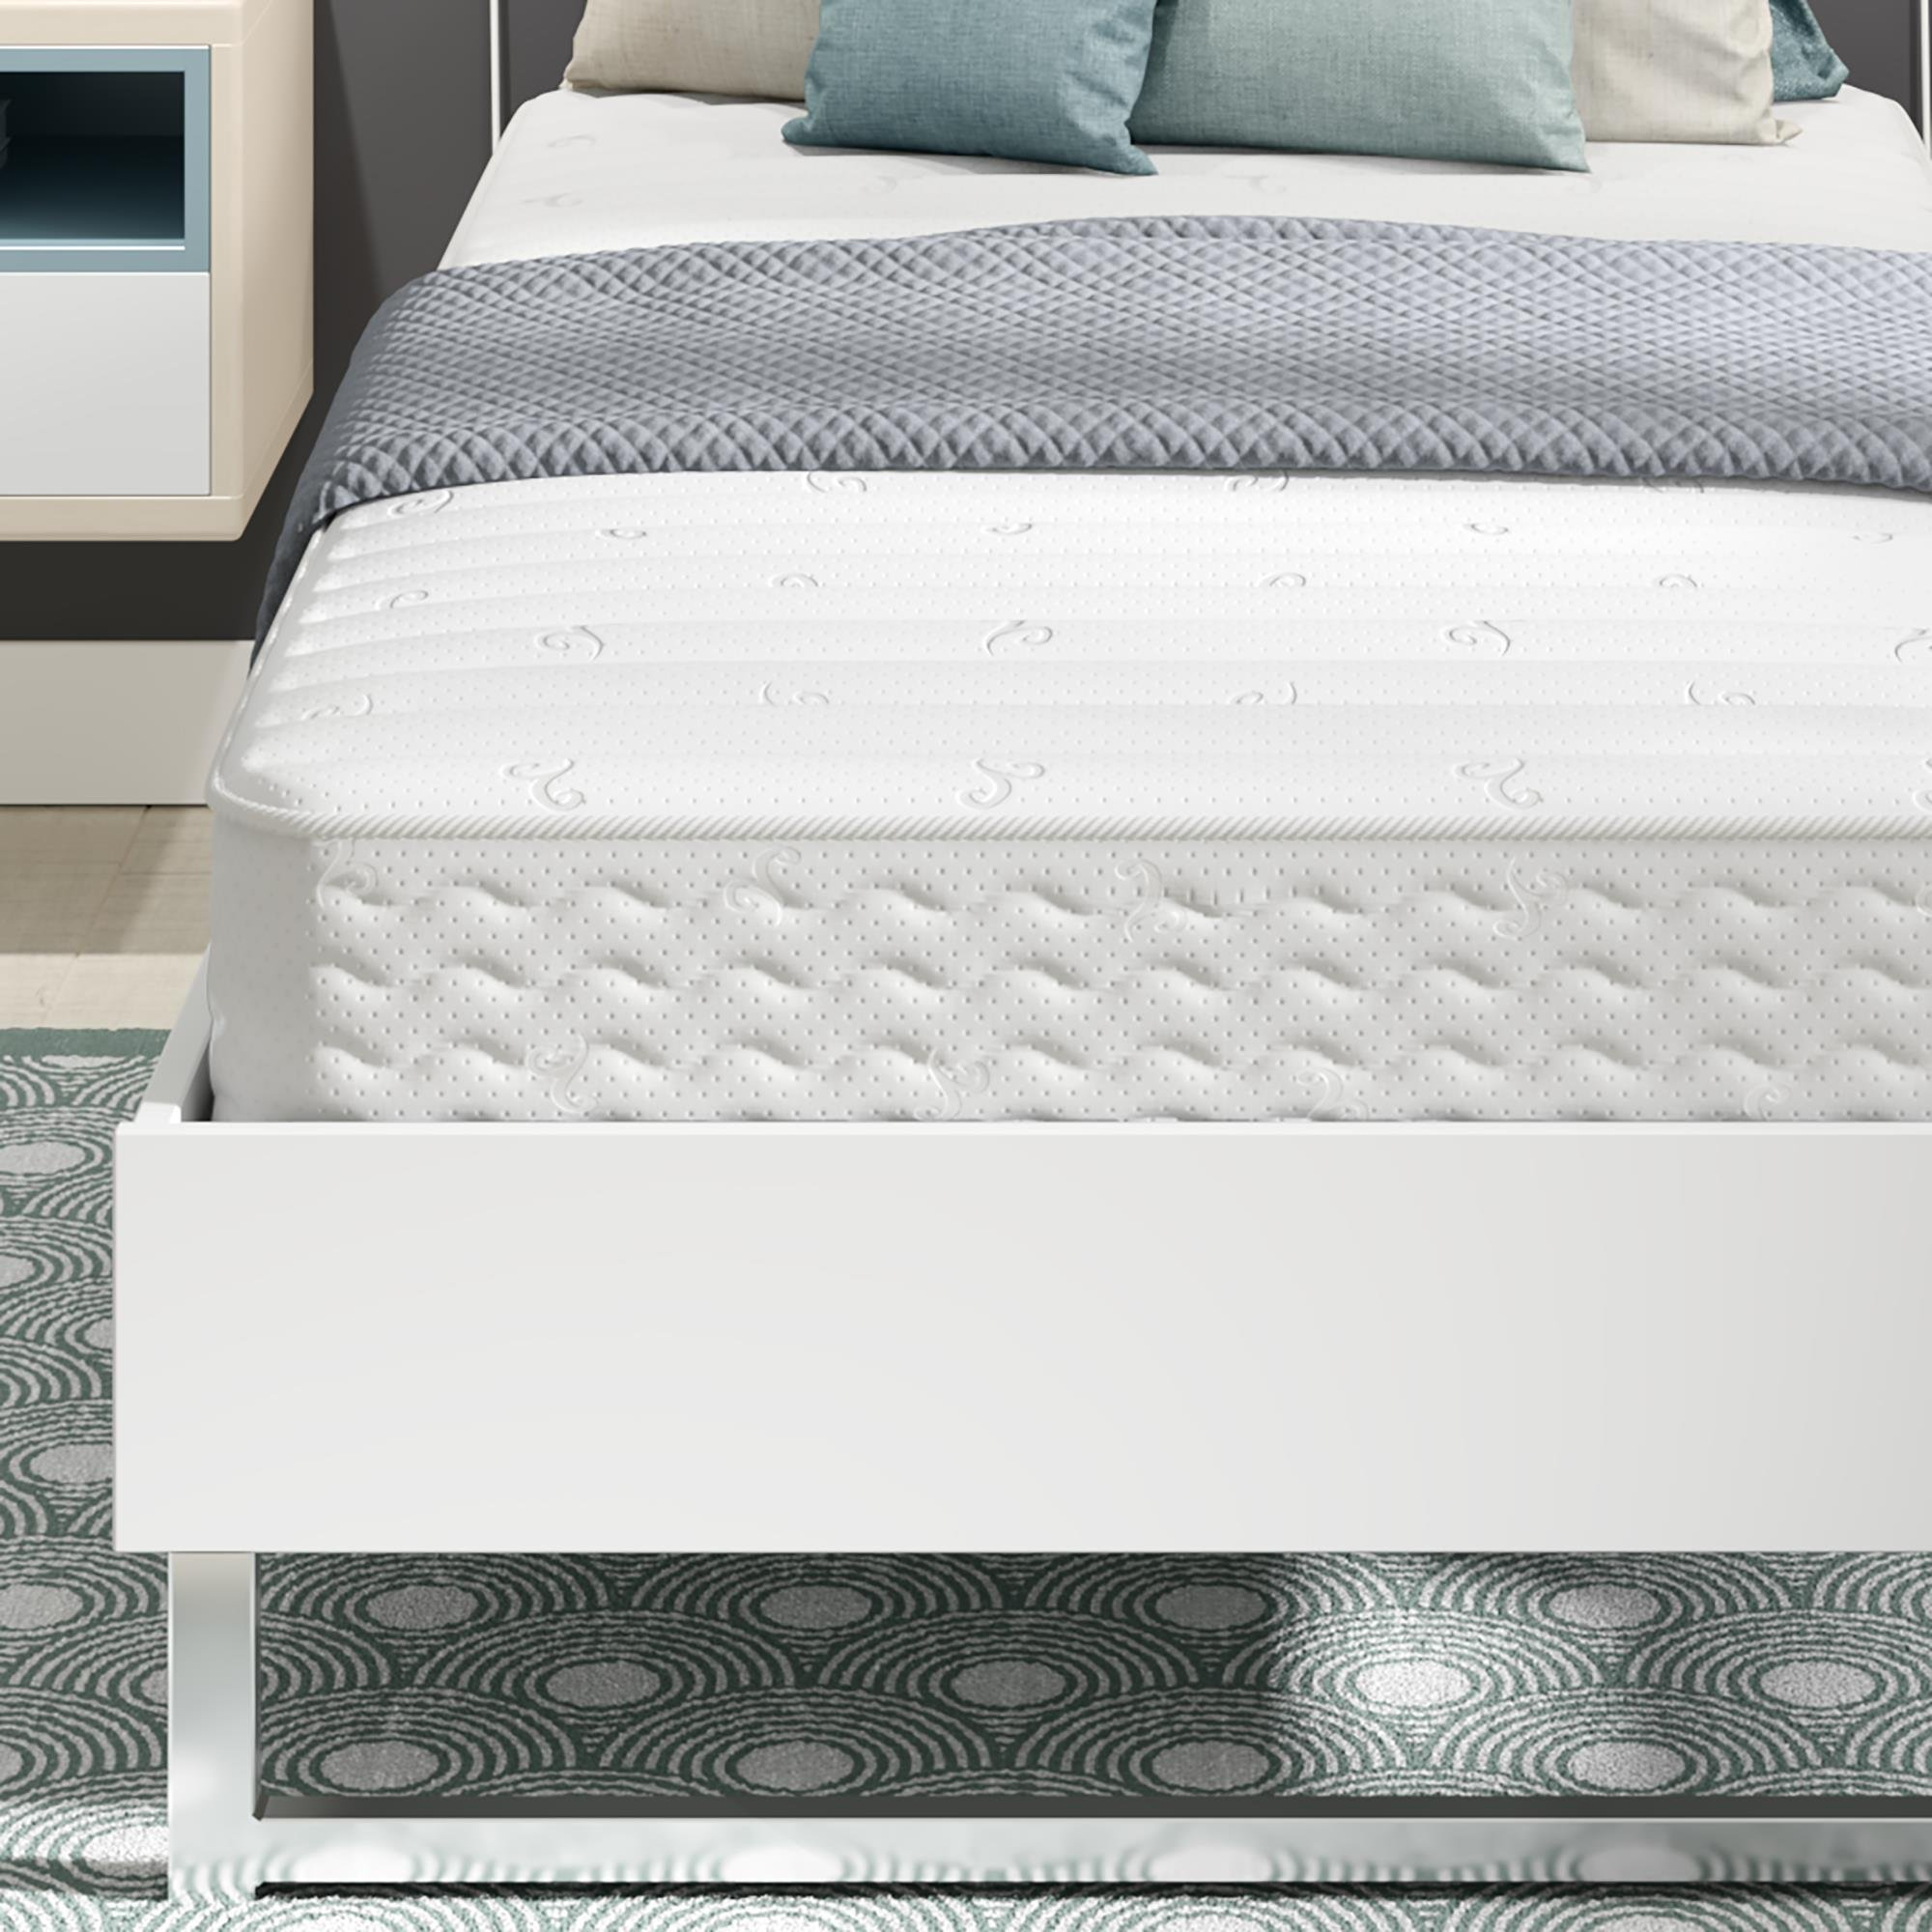 Signature Sleep 5426096 Contour Encased Mattress, Twin, White by Signature Sleep